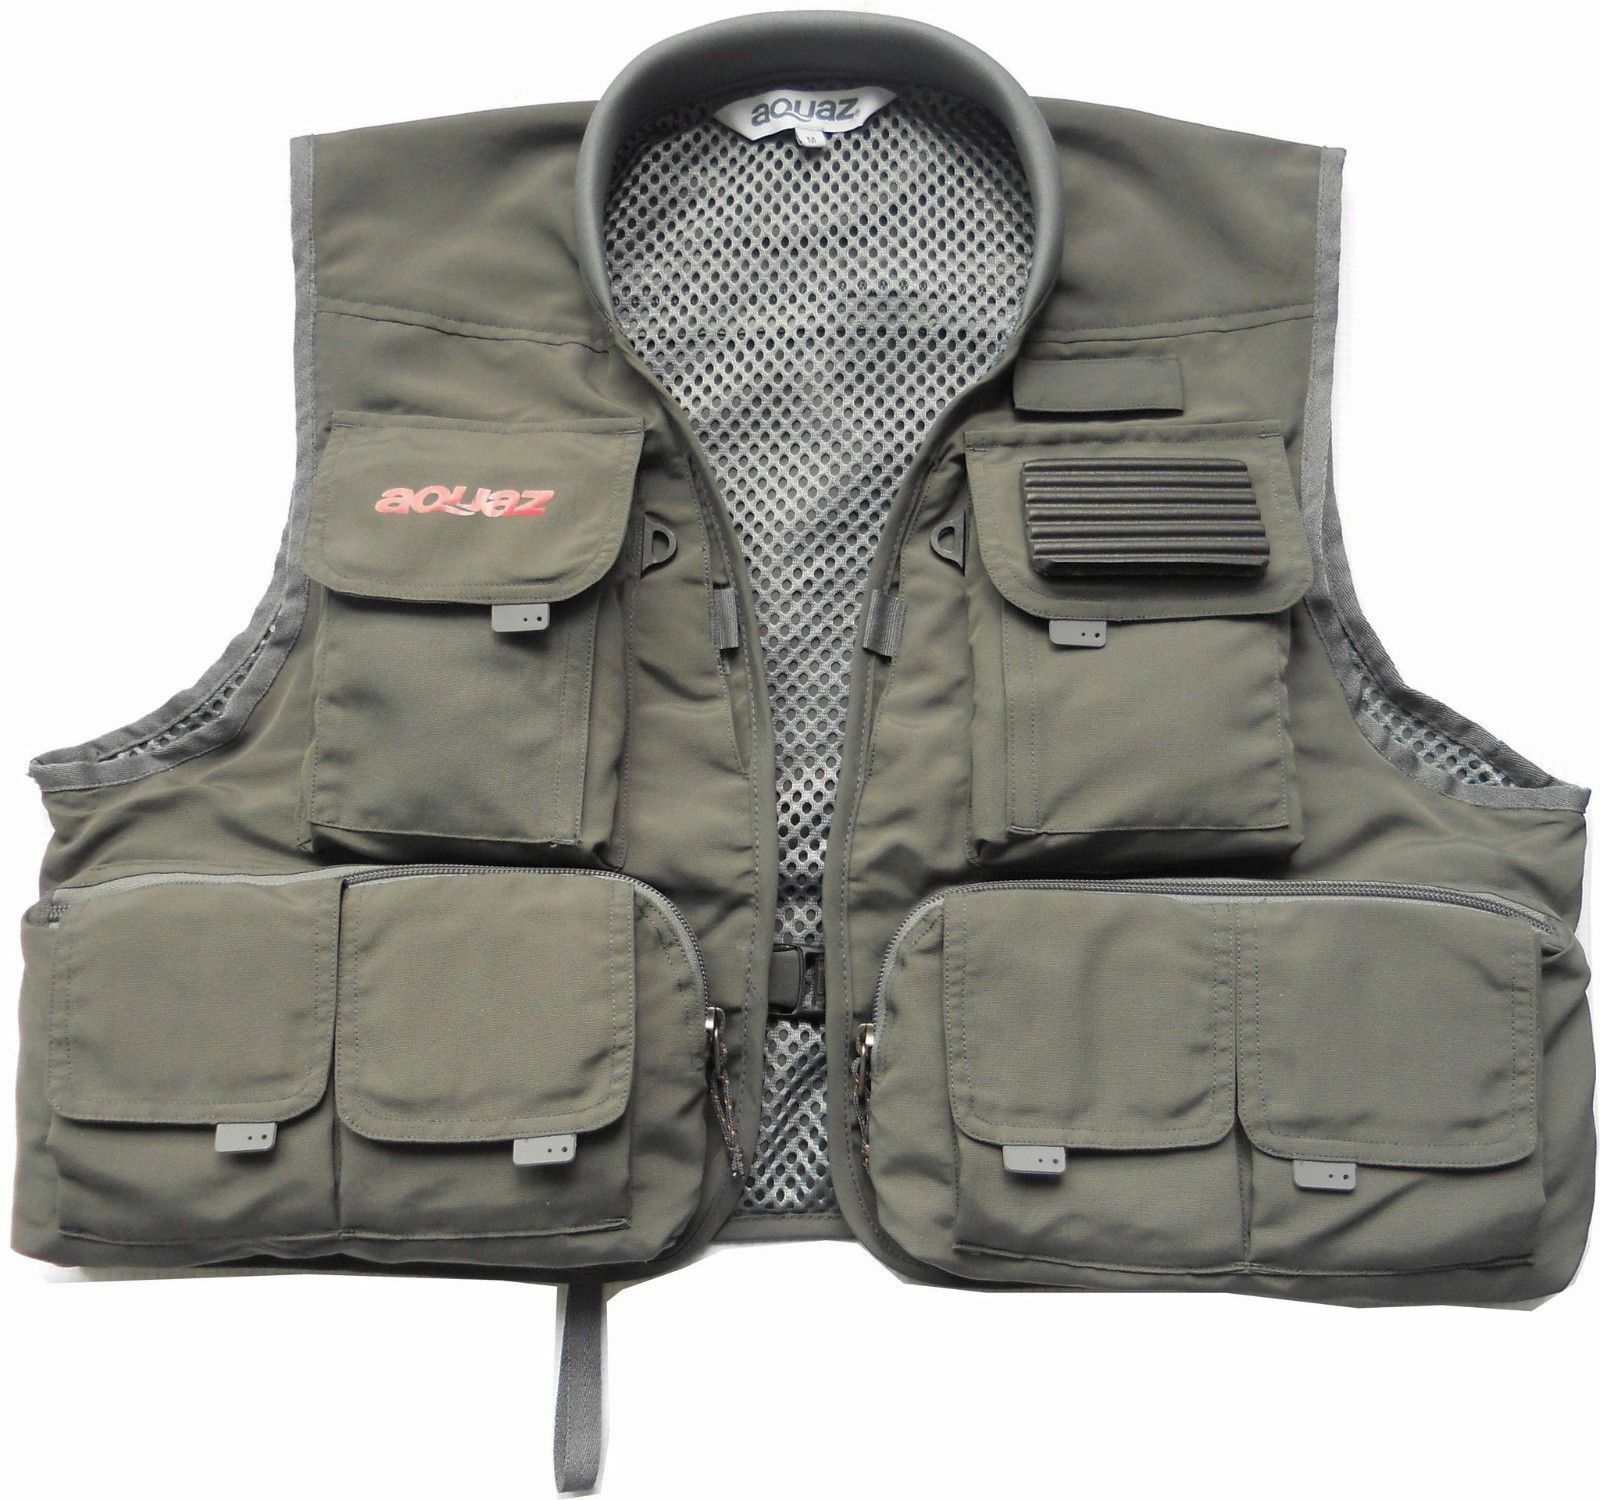 Aquaz Kenai Fly Fishing   Wading Chest Vest - Taille grand Charcoal gris Couleur nouveau